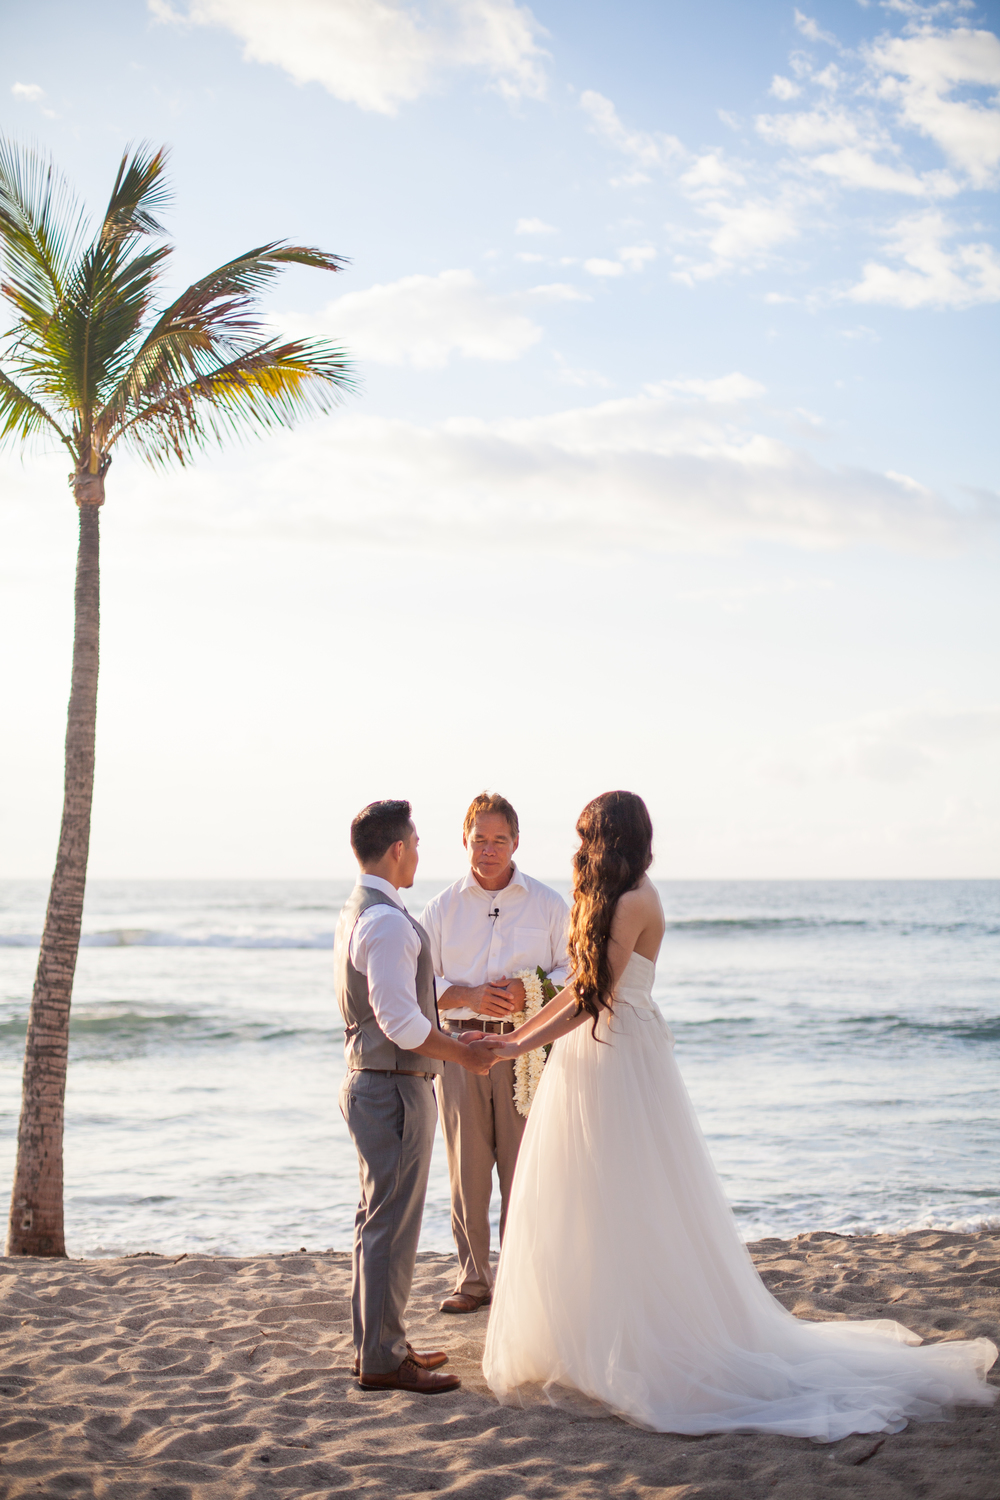 big island hawaii mauna lani resort wedding © kelilina photography 20160523181948-1.jpg